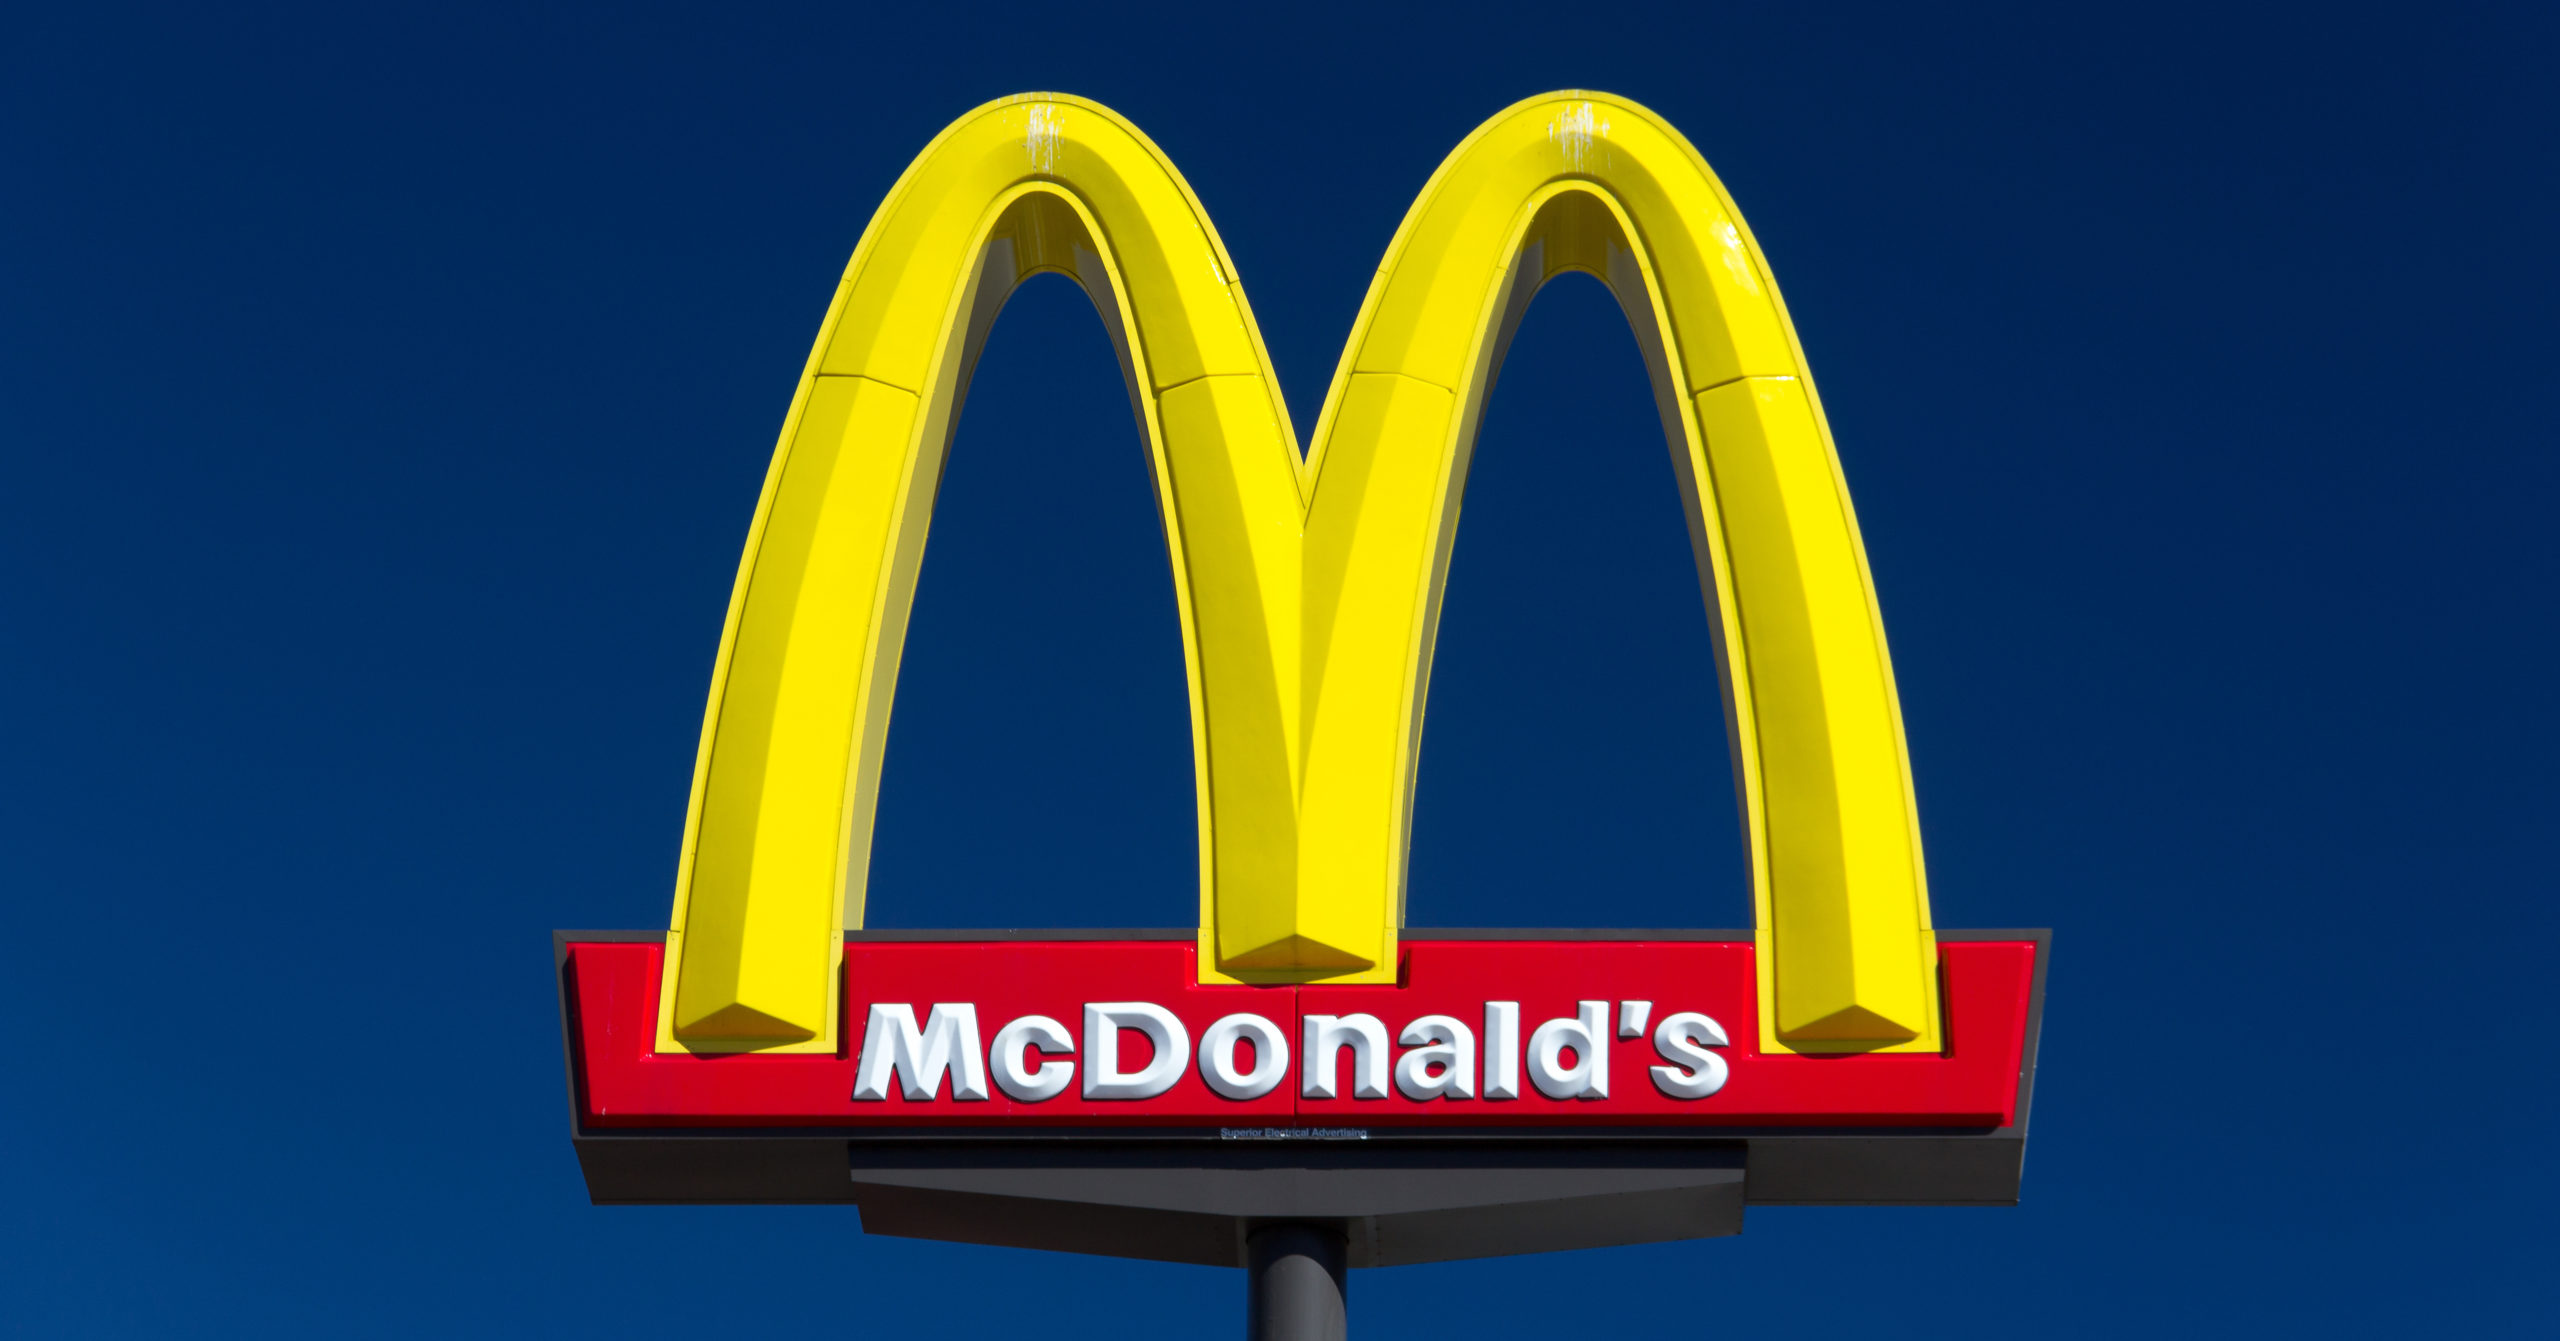 McDonald's announces global ban of toxic chemicals in food packaging